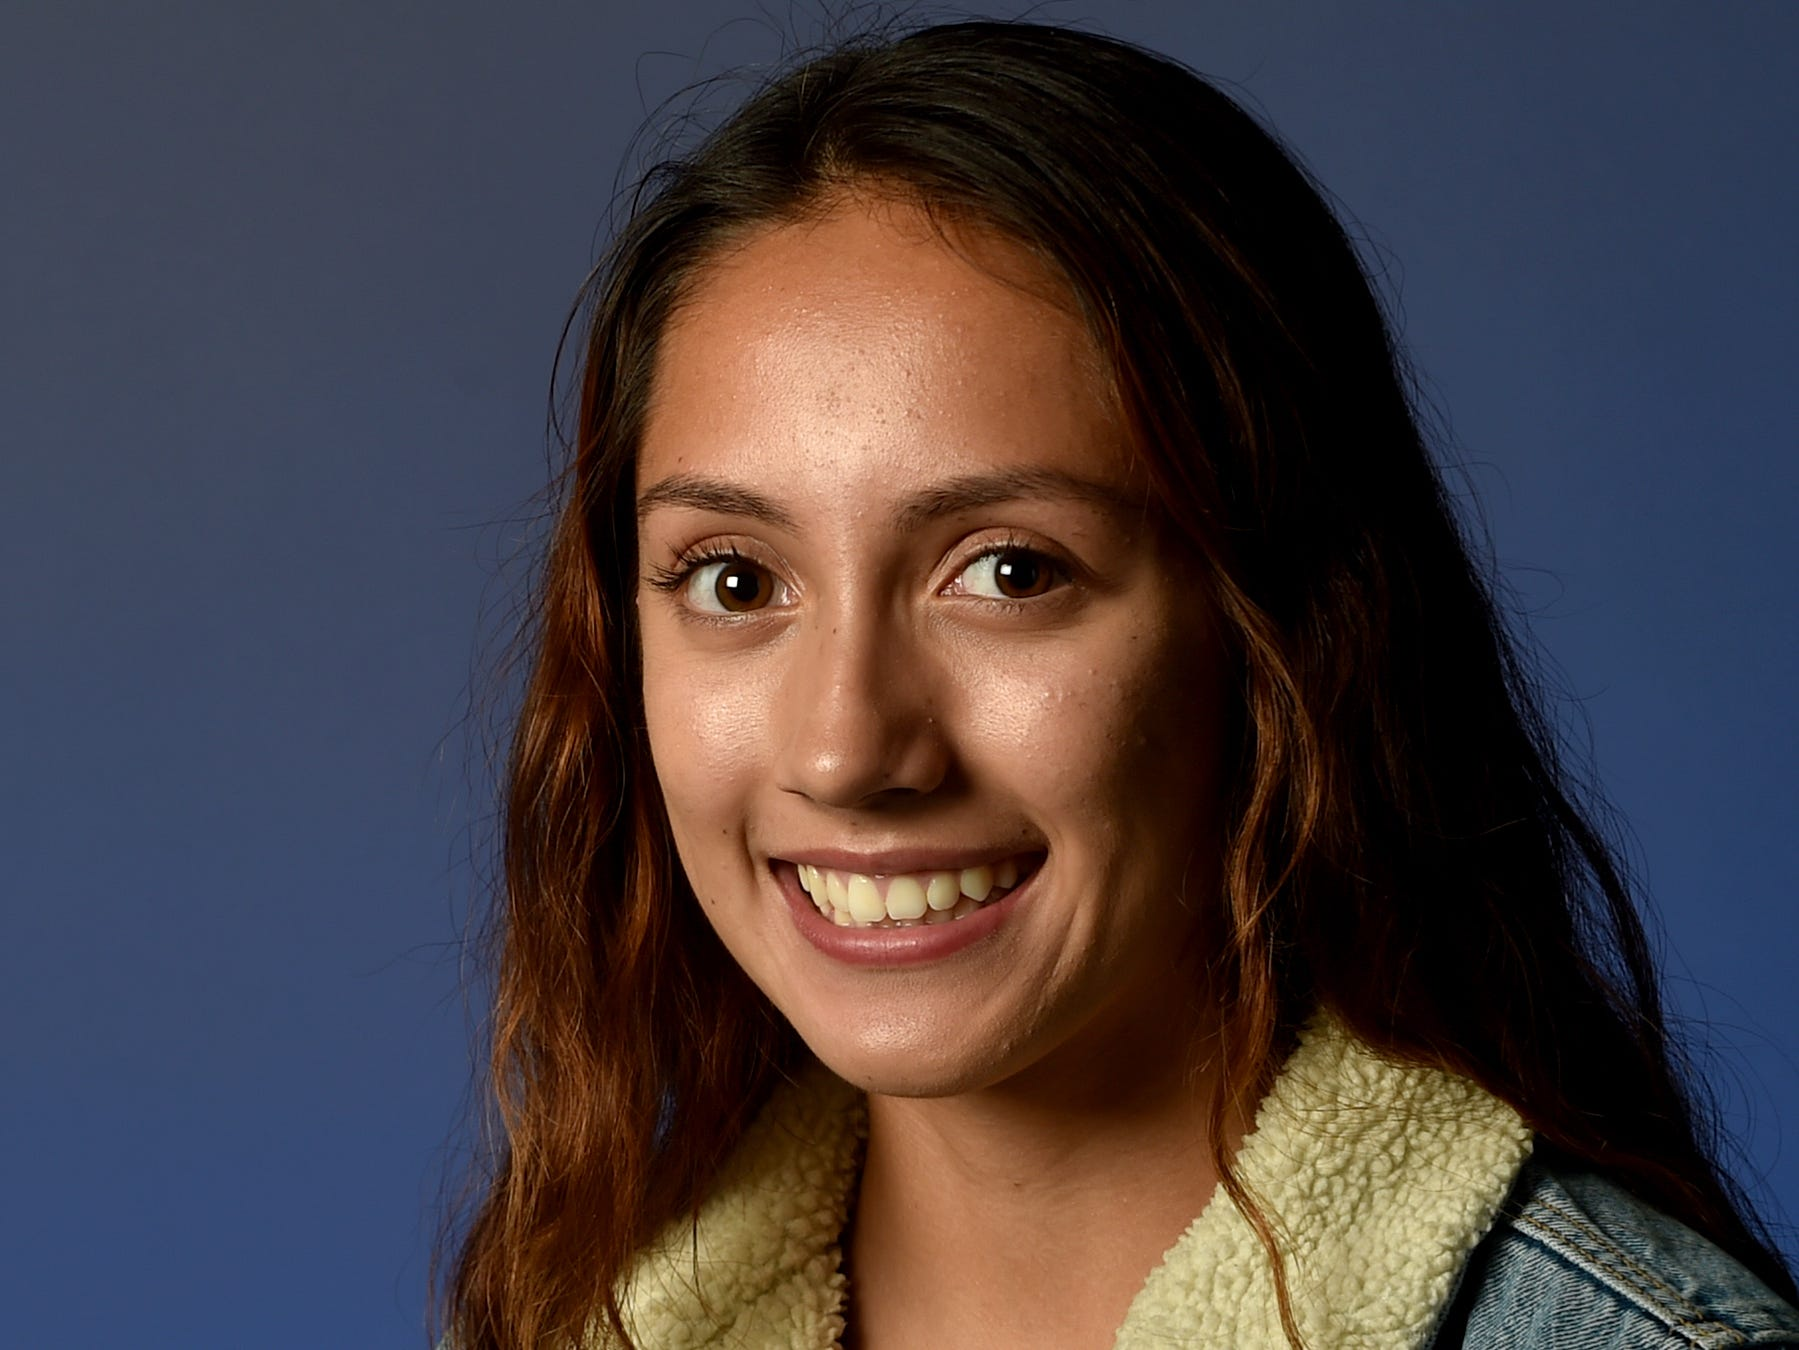 "ASHLEY GONZALEZ, Westlake: The junior was an All-Marmonte League first-team selection after finishing fifth in the league finals with a time of 18:34.32. She had her personal best at the CIF-SS Division 2 finals, finishing 22nd overall in 17:50.6. Gonzalez was Westlake's second-best finisher at the Division II state meet. The 4.3 GPA student lists ice skating as a favorite hobby. Her favorite movie is ""Soul Surfer""  and her favorite TV show is ""Make It or Break It."" She listens to singer The Weeknd and lists fried quesadillas as her favorite food. Her favorite athlete is American track star Allyson Felix and she roots for the University of Texas."